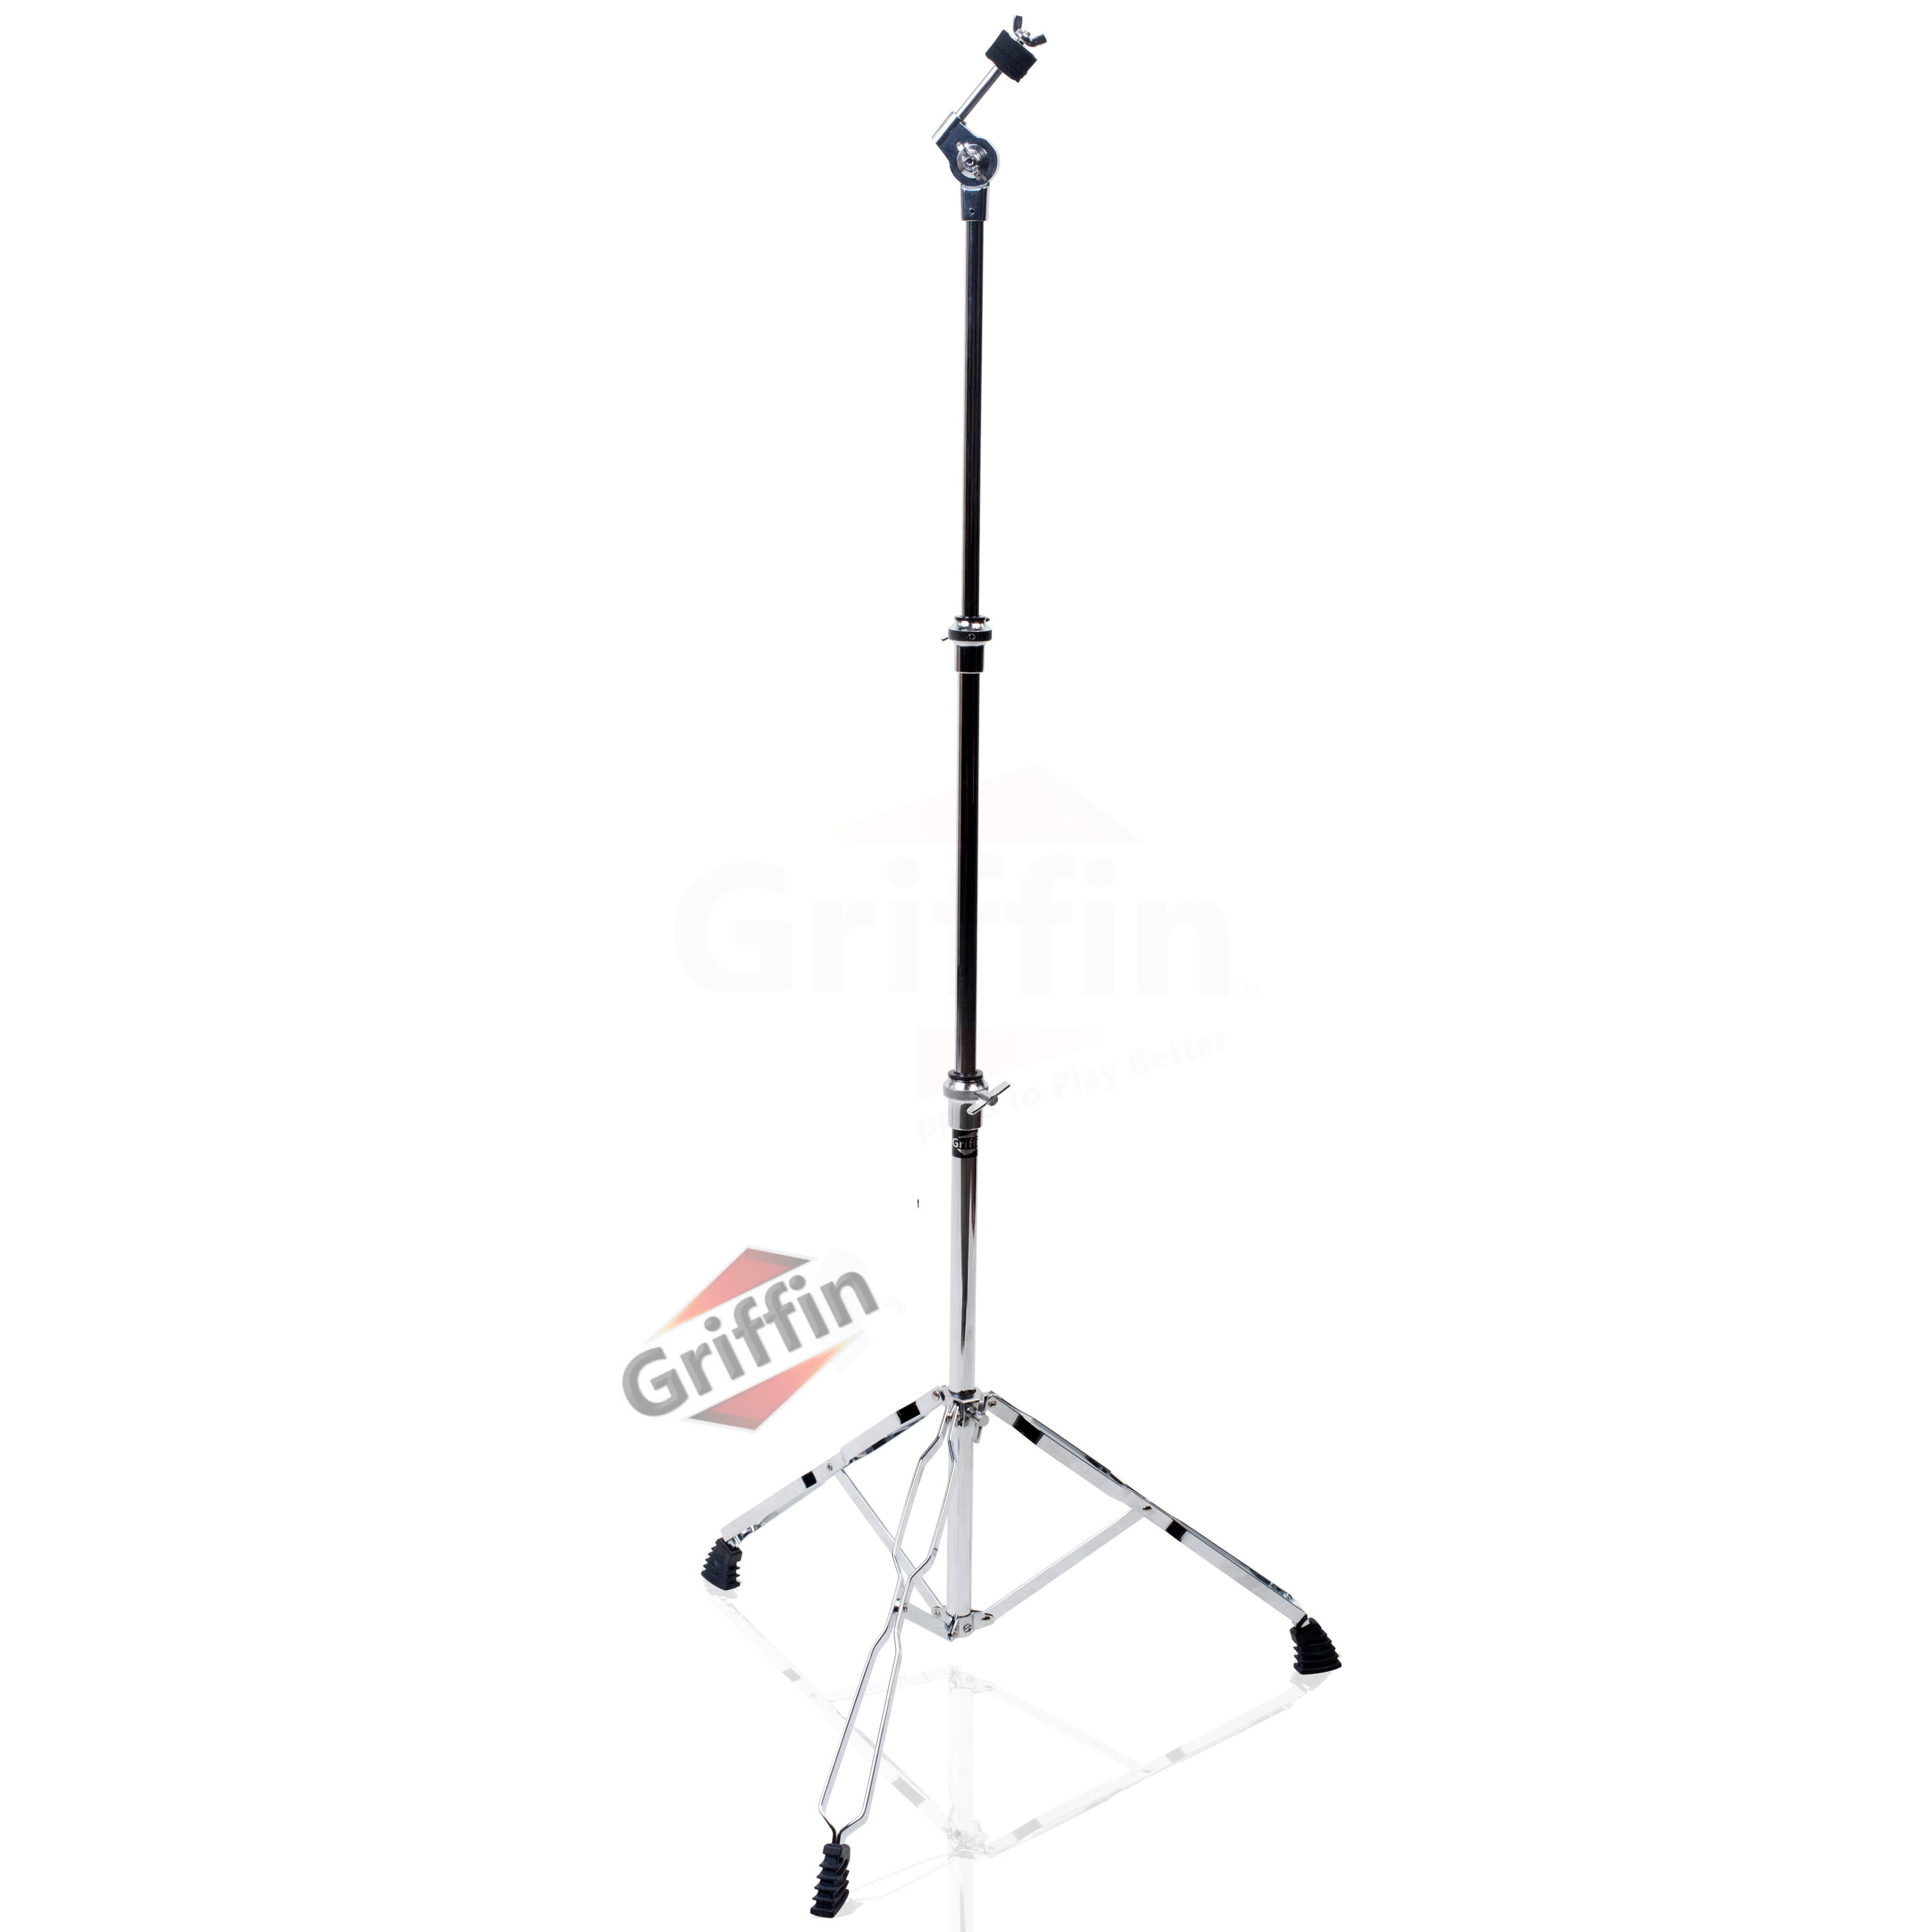 Straight Cymbal Stand by Griffin | Deluxe Percussion Drum Hardware Set for Mounting Medium-Duty Crash, Ride & Splash Cymbals|Double Braced Legs, Slip-Proof Gear Holder | Light-Duty for Mobile Drummers